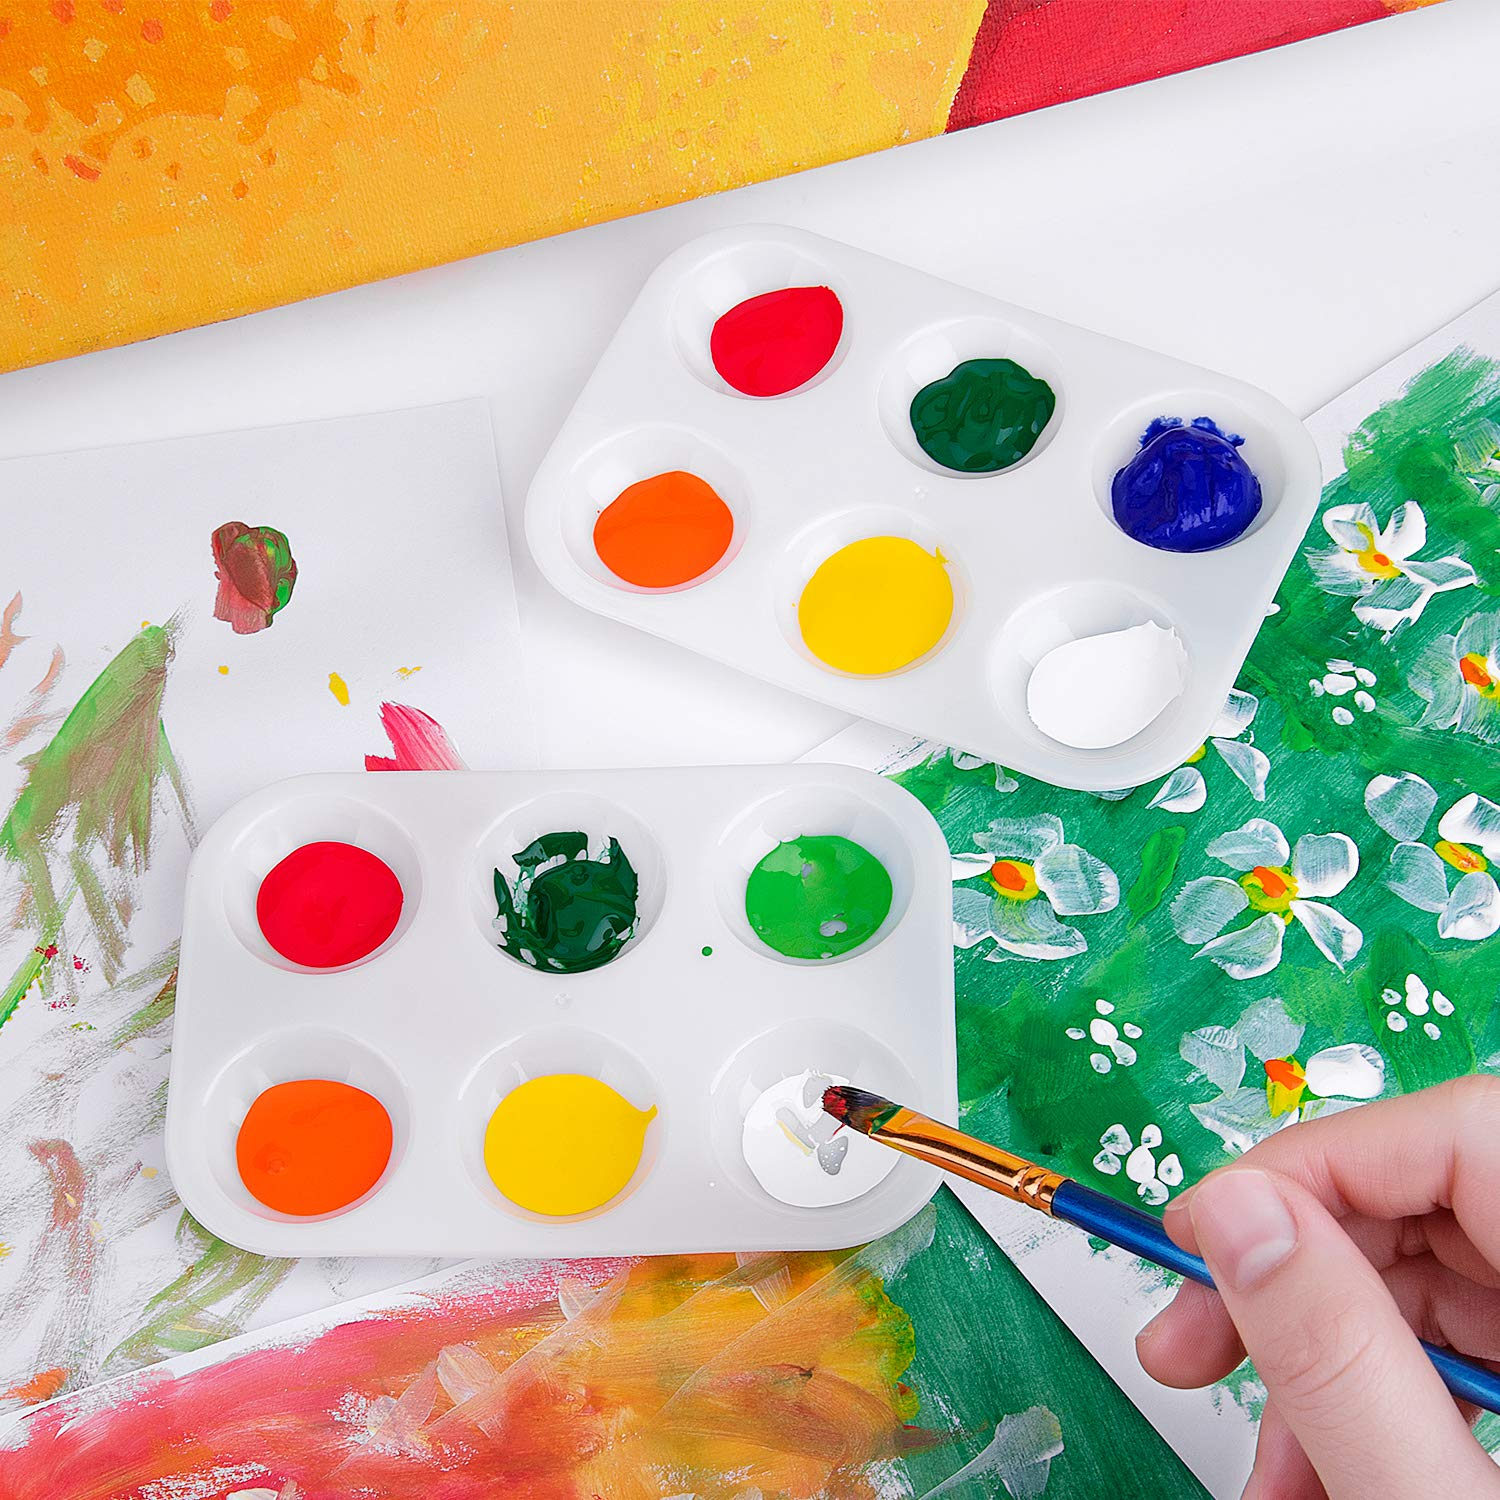 25 Pcs Paint Tray Palettes 6 Well Rectangular Plastic Watercolor Pallets White